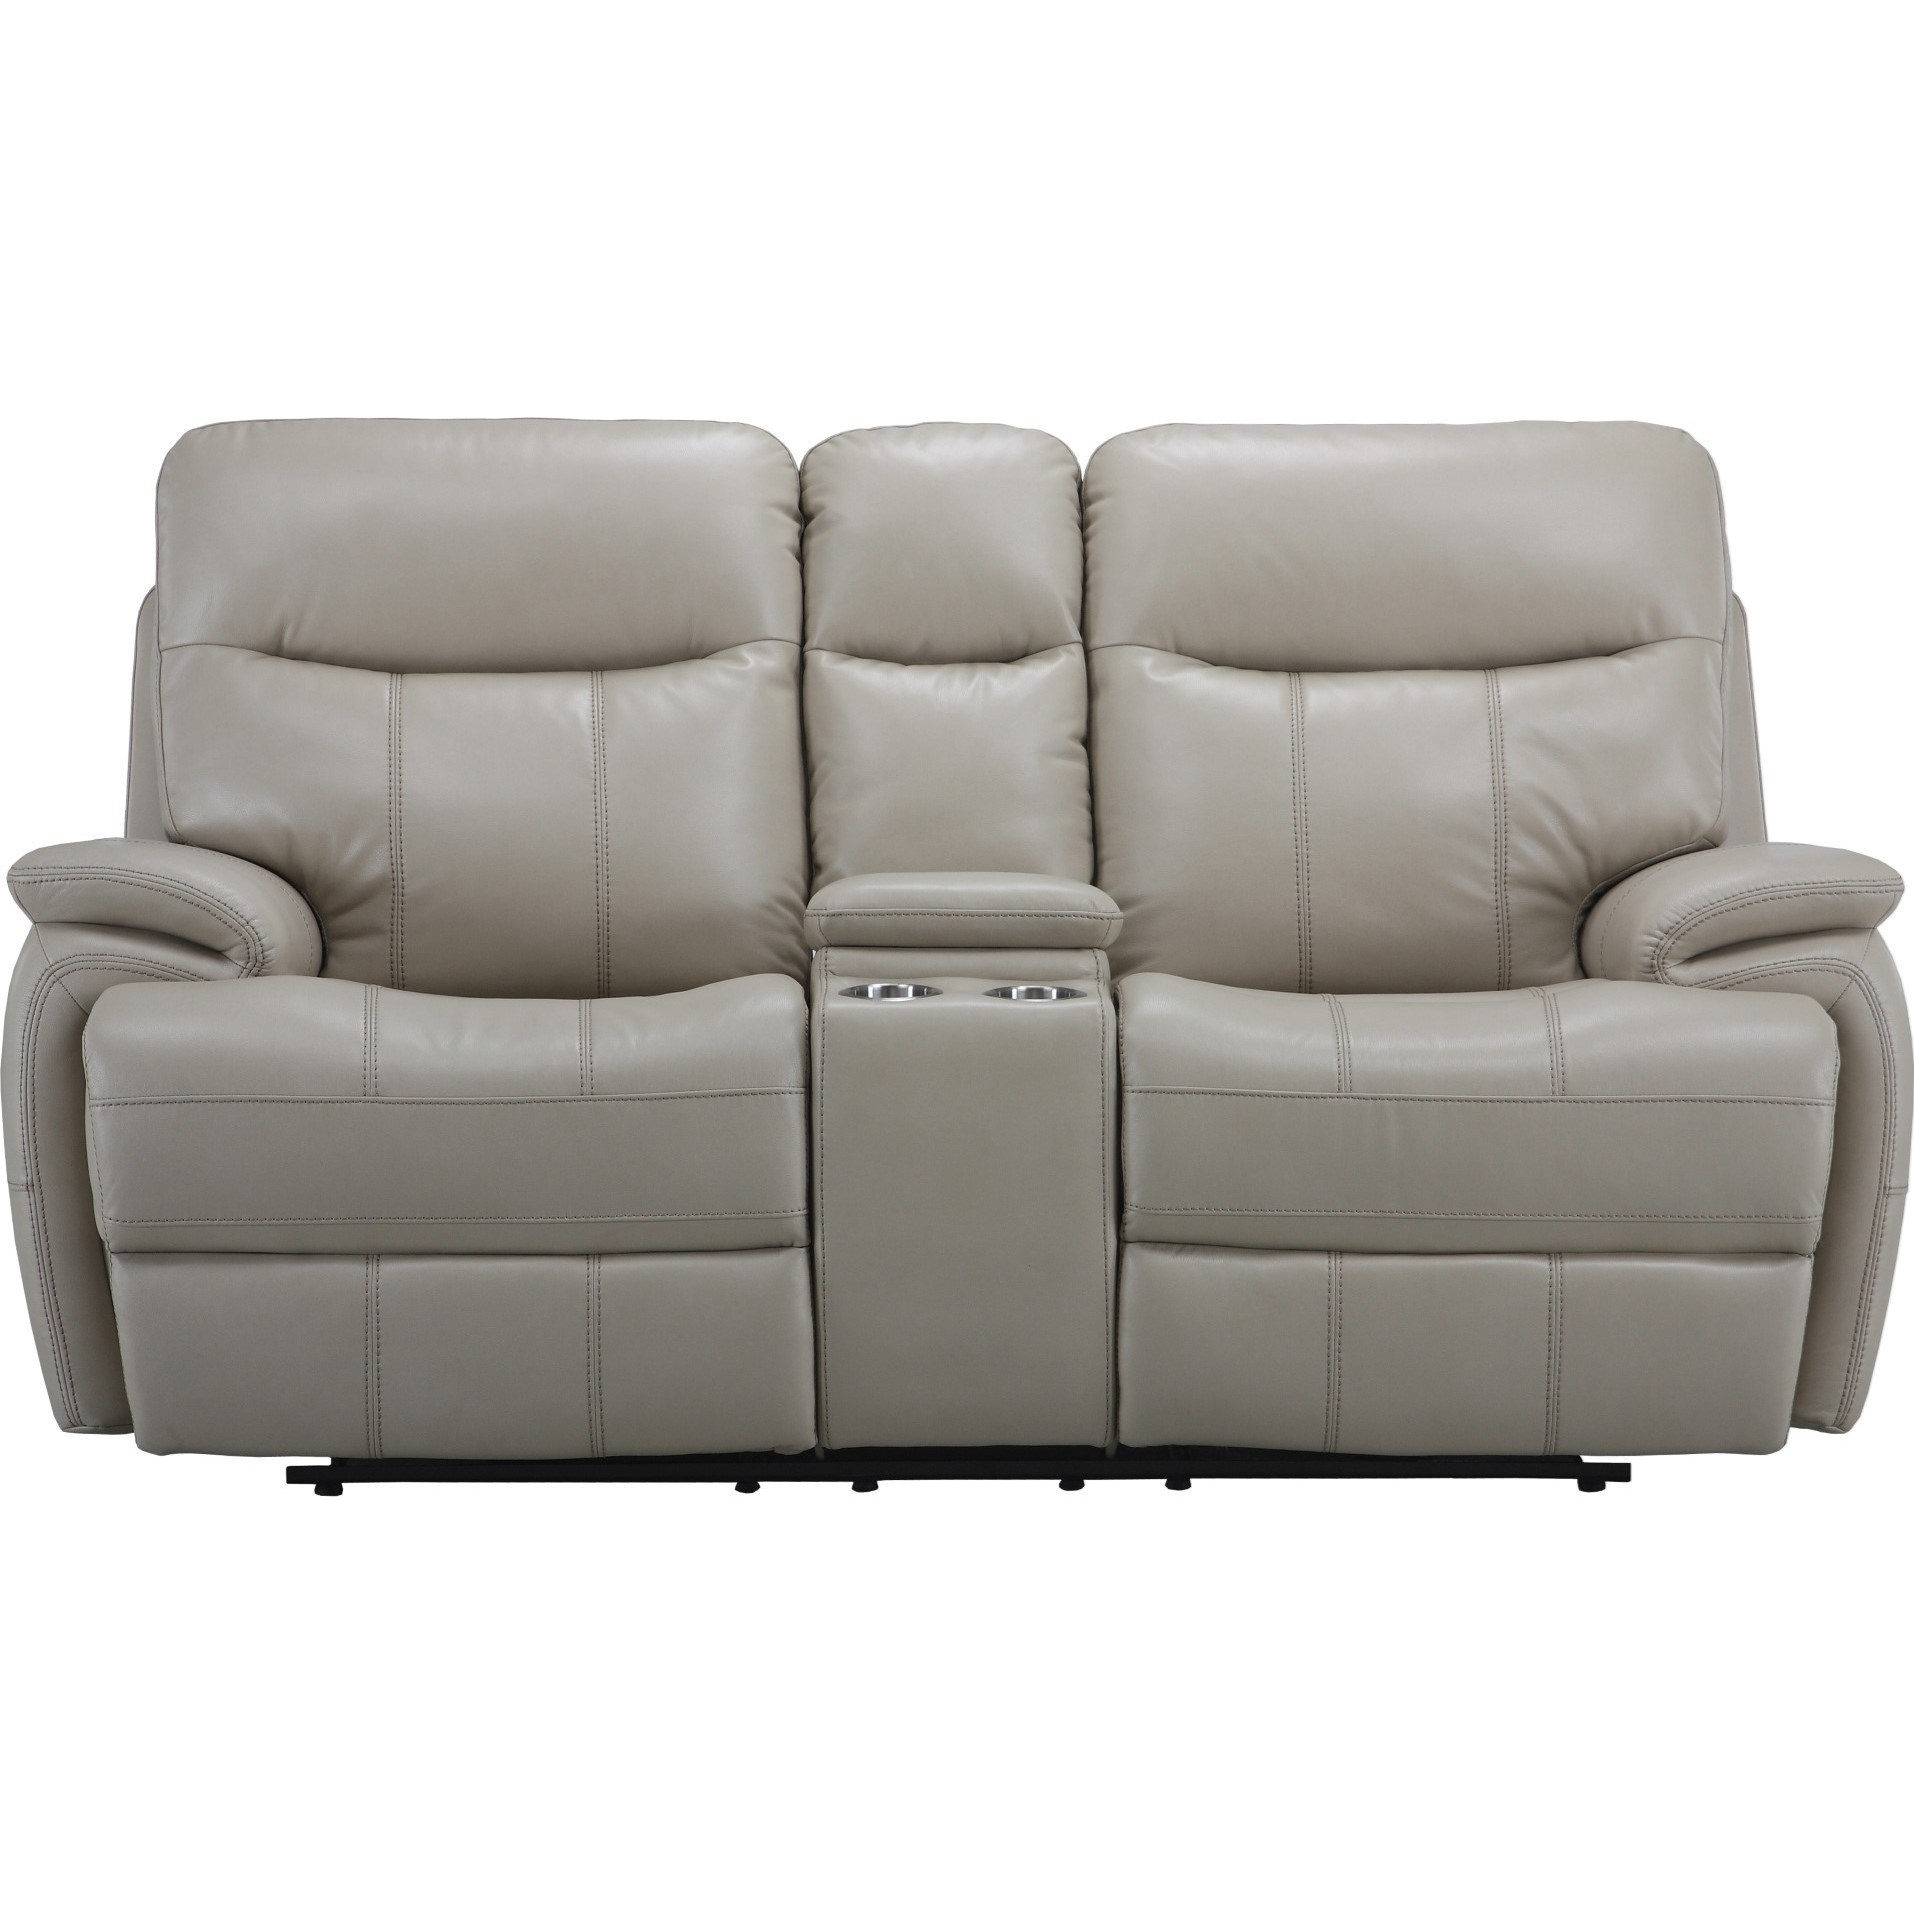 Parker Living Dylan Dual Recliner Power Console Loveseat - Item Number: MDYL-822CP-CRE